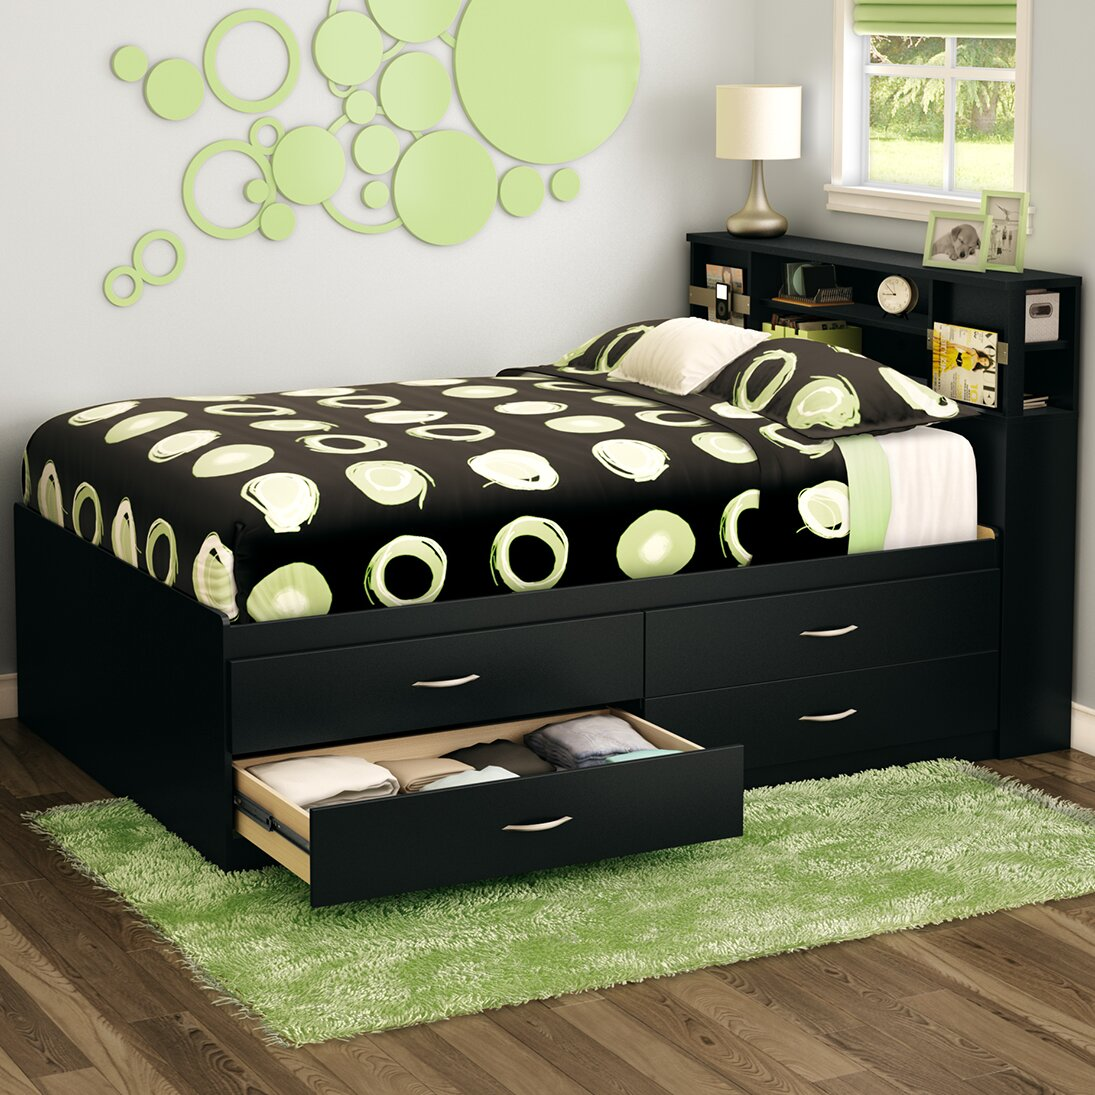 South Shore Storage Bed Reviews